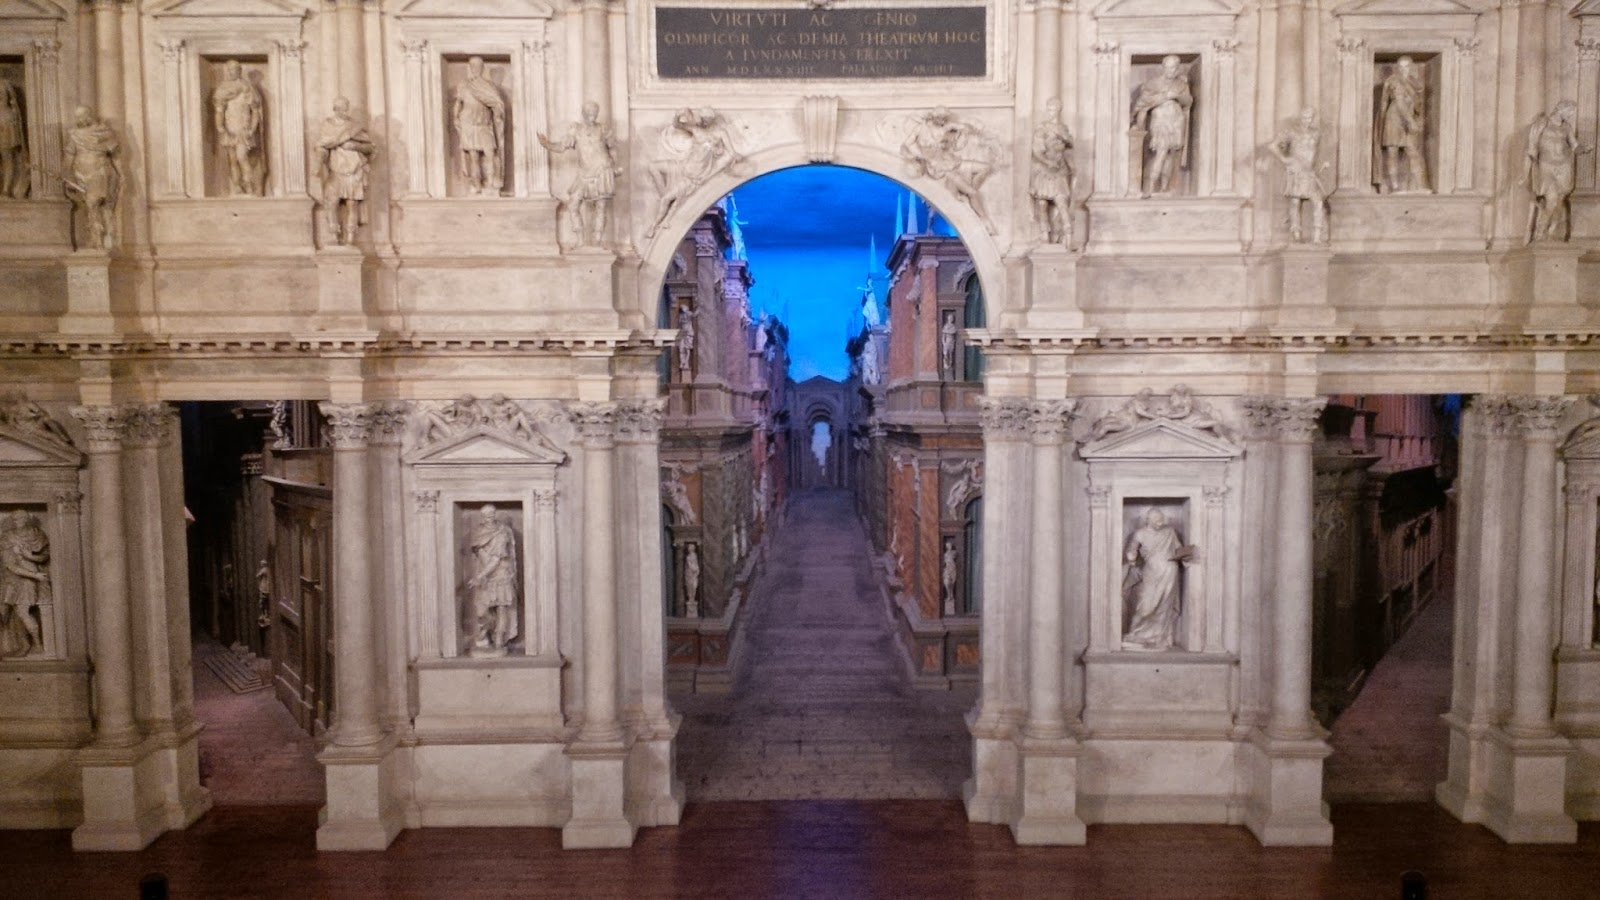 The stage of Teatro Olimpico with the perspective views behind it